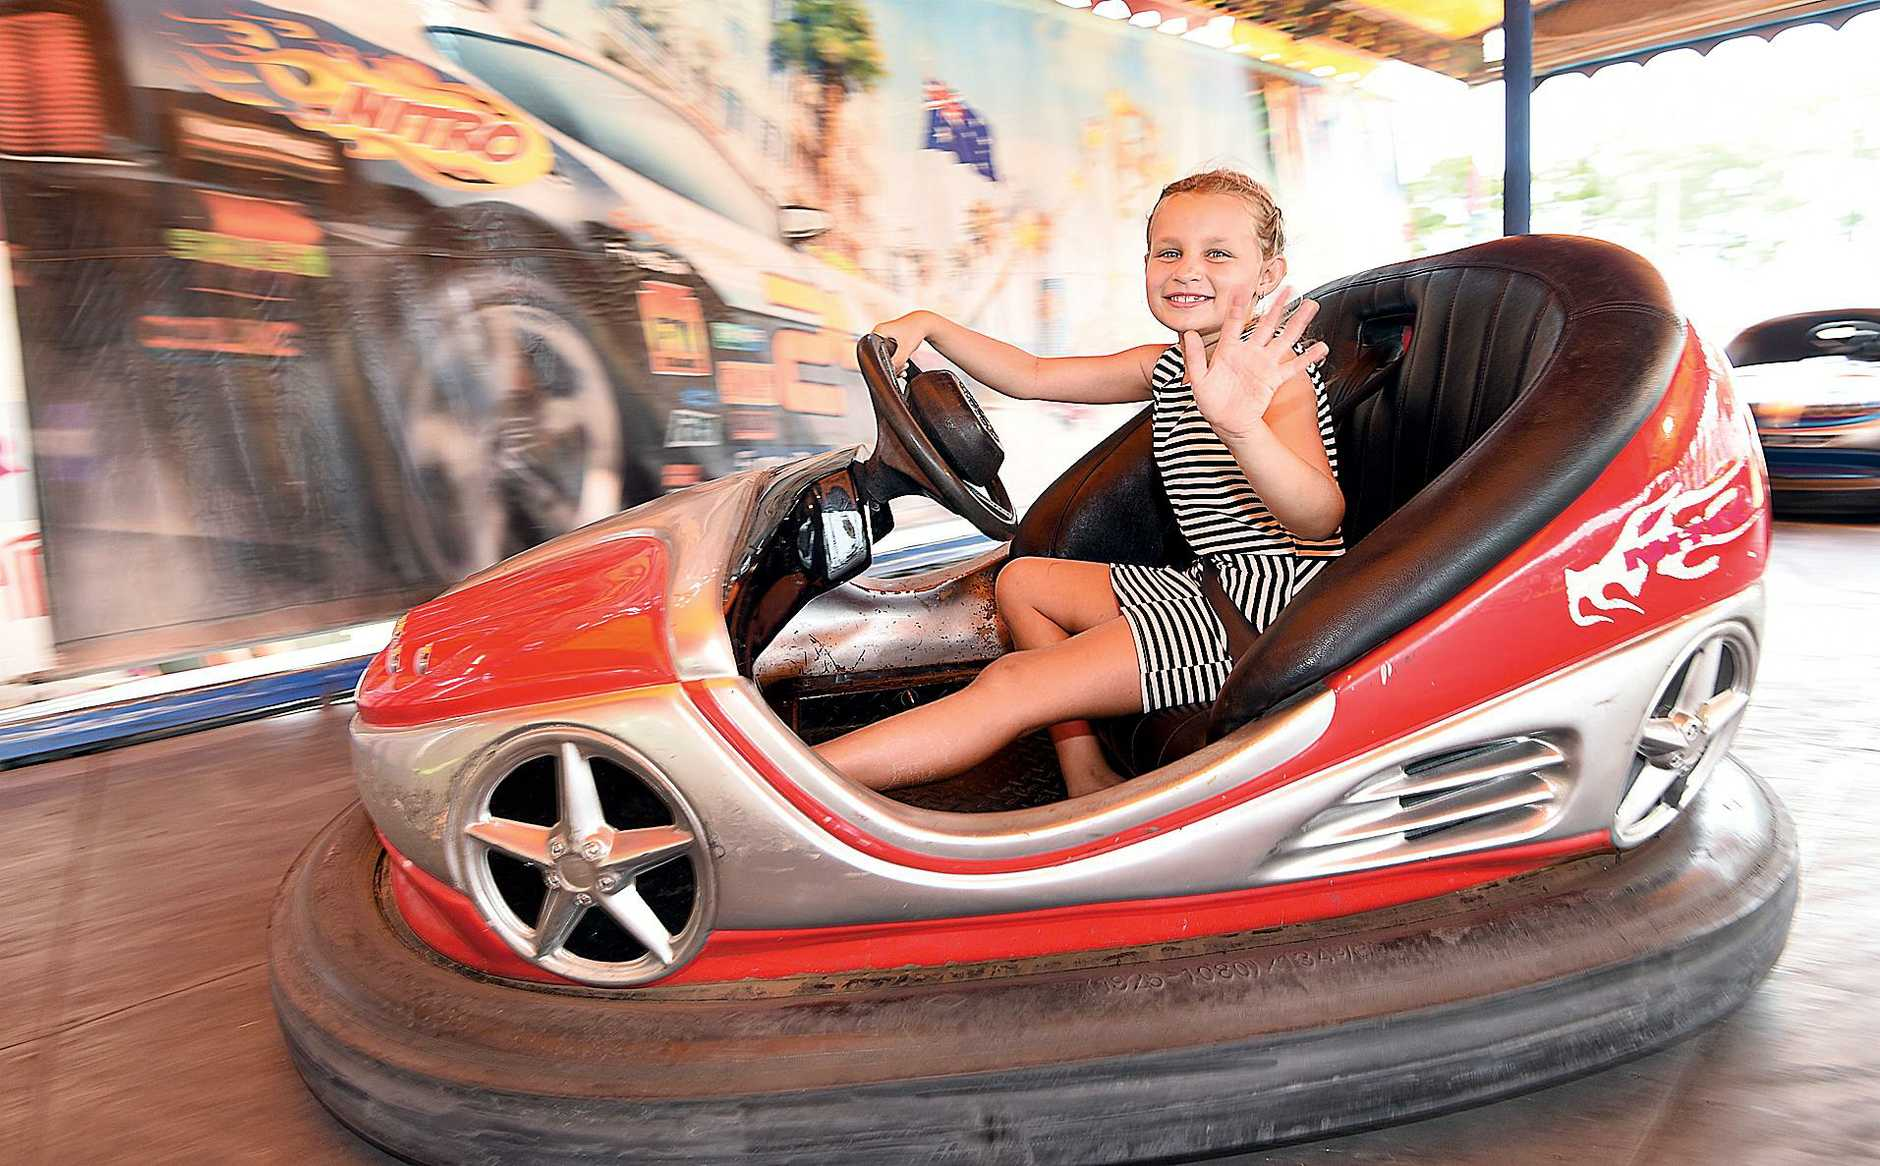 Seafront Oval Family Carnival - 7 yr old Tira Cronk on the dodgem cars.